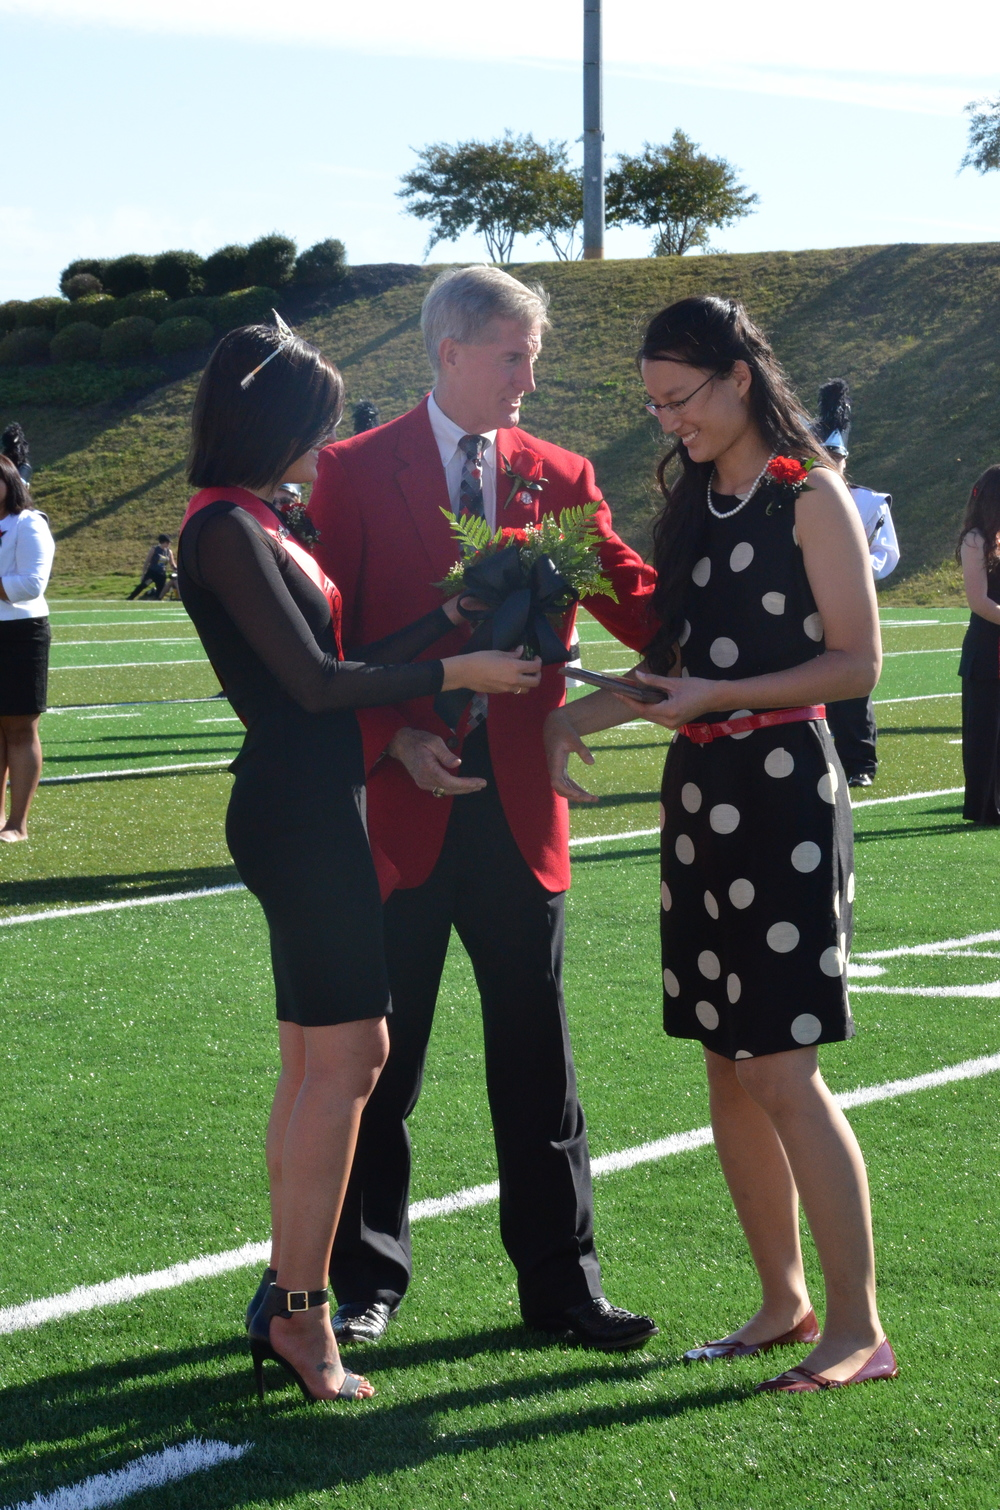 Sammi and Dr. Epting give Katy her award and flowers.